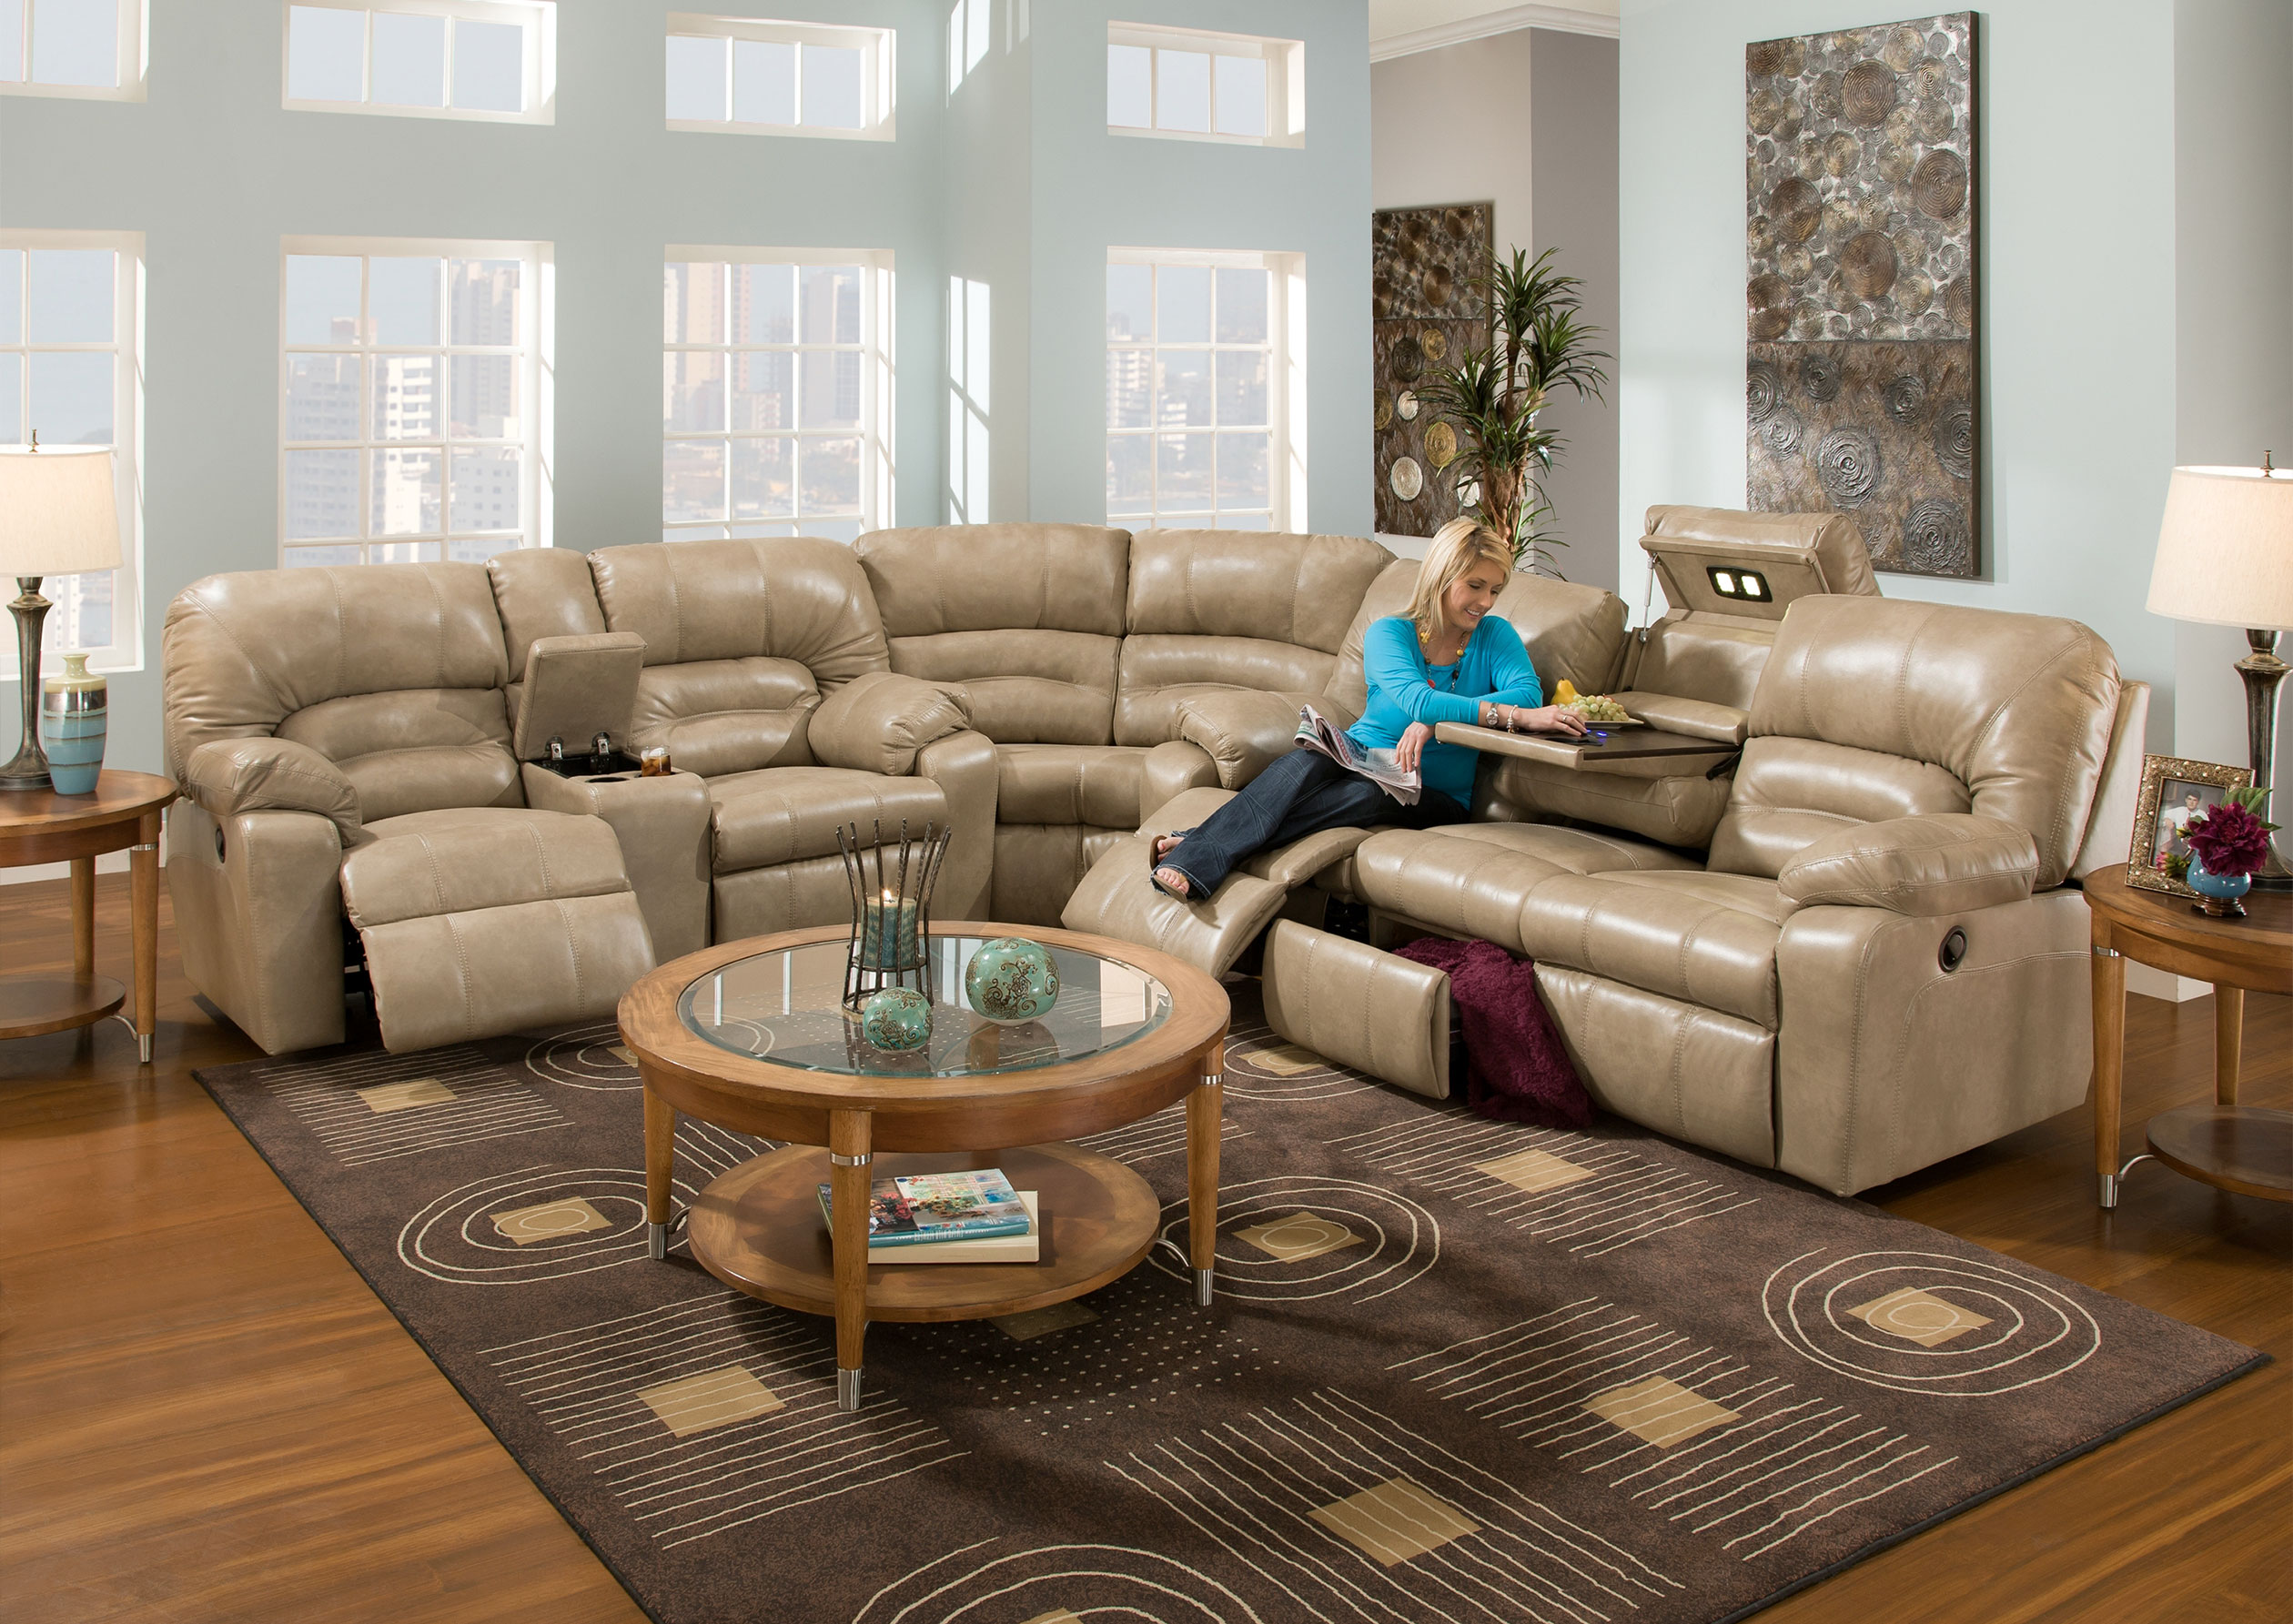 Enjoyable Dakota 596 Reclining Sectional Java Or Putty Sofas And Ibusinesslaw Wood Chair Design Ideas Ibusinesslaworg